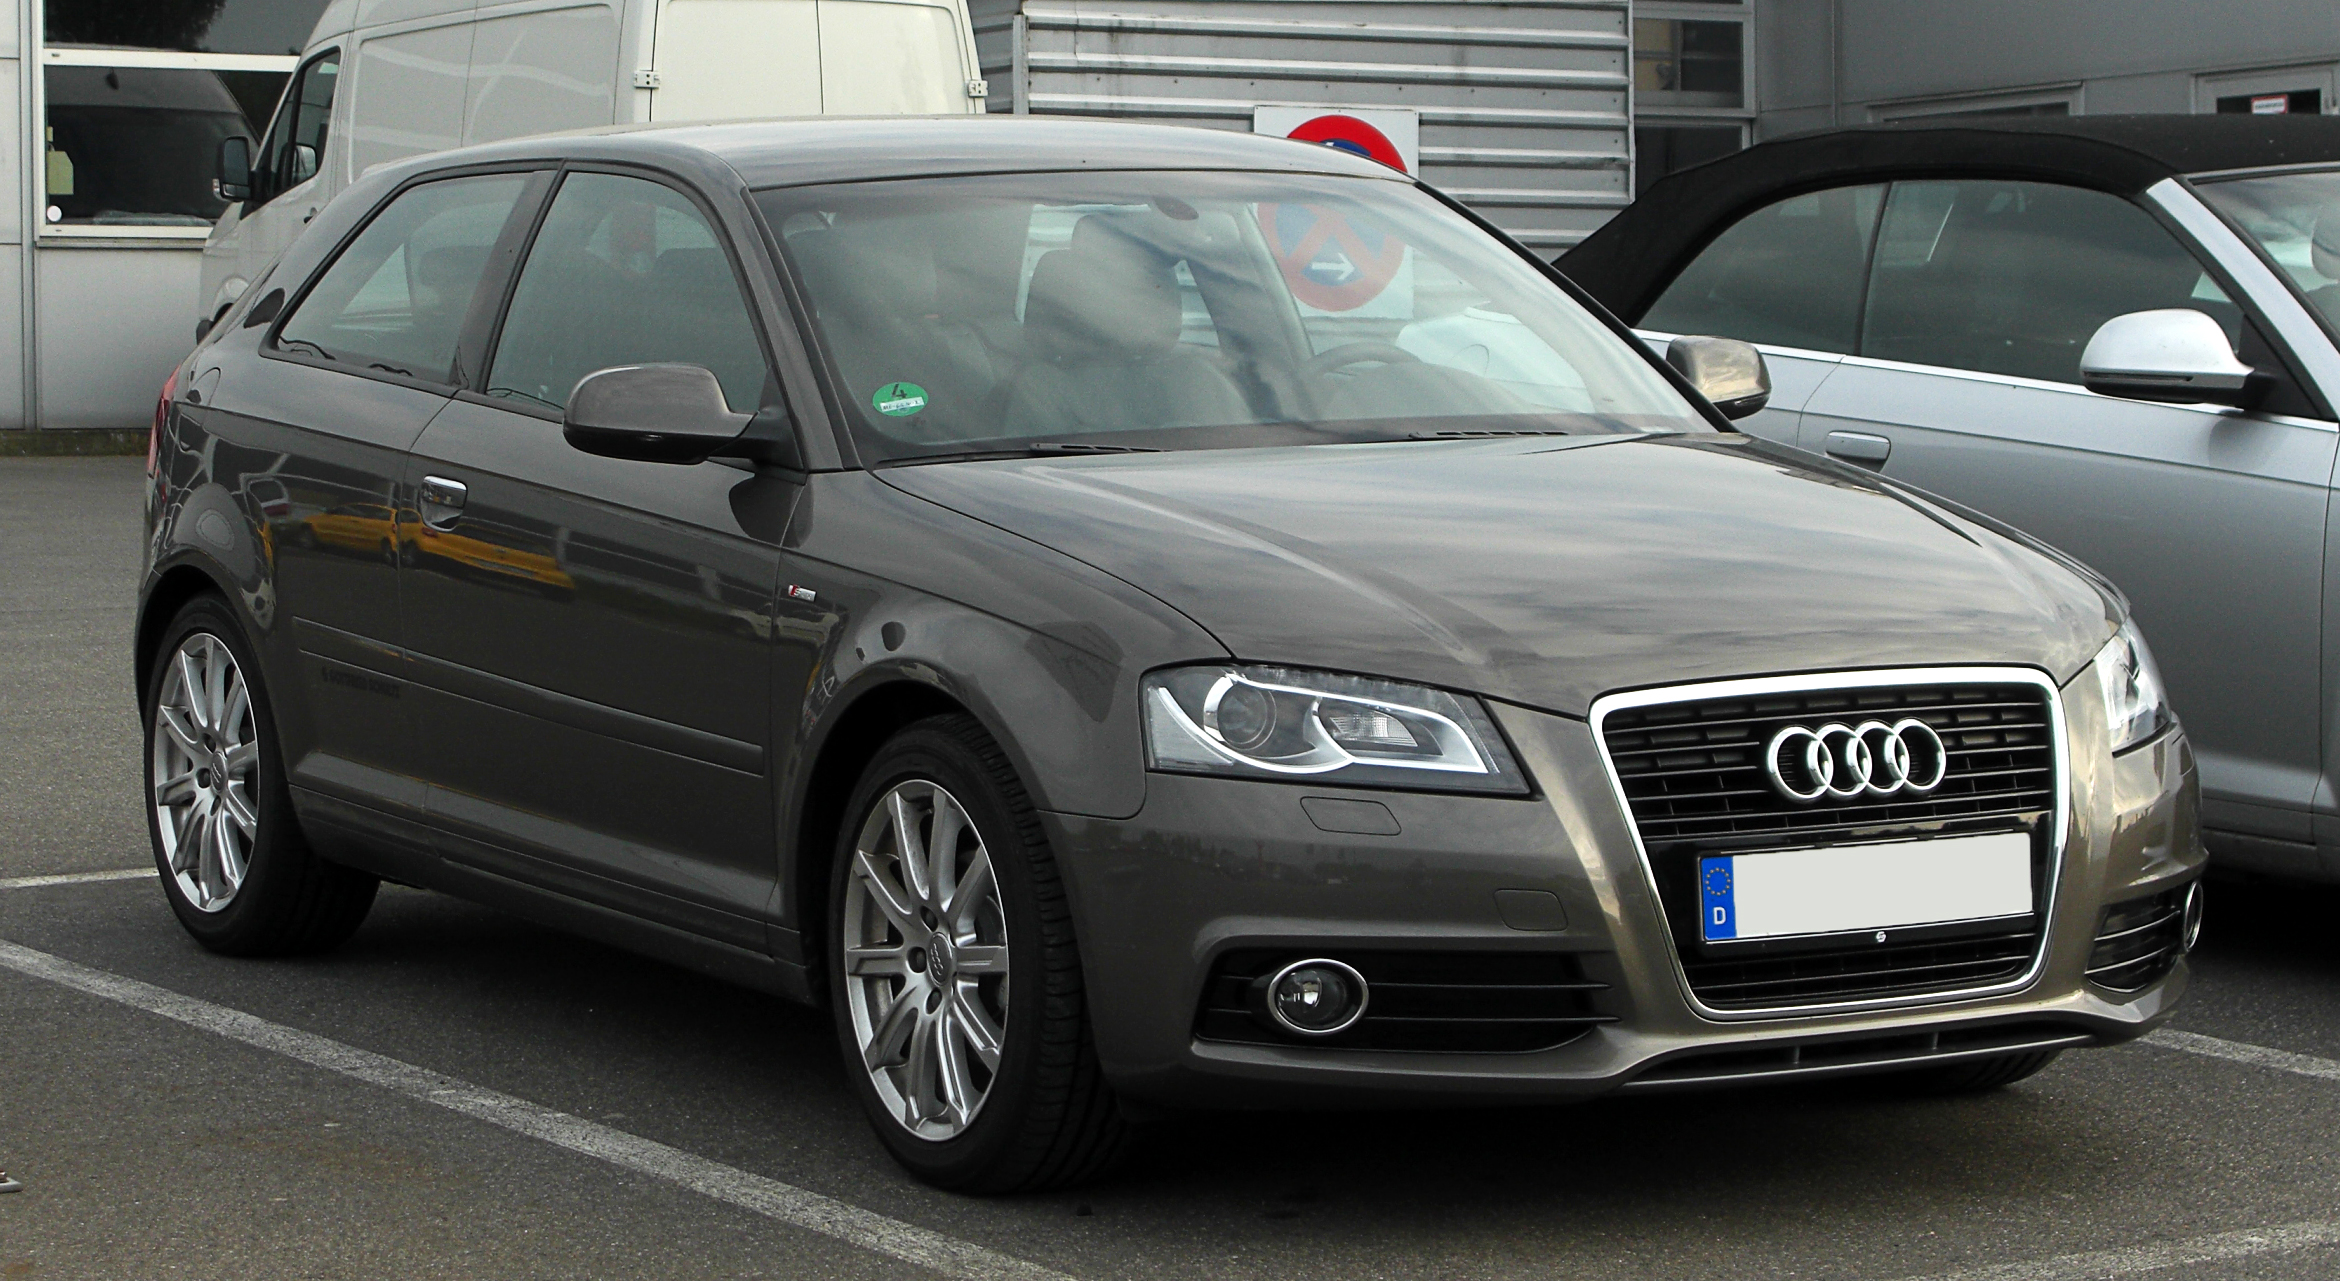 2004 audi a3 sportback 8p pictures information and specs auto. Black Bedroom Furniture Sets. Home Design Ideas